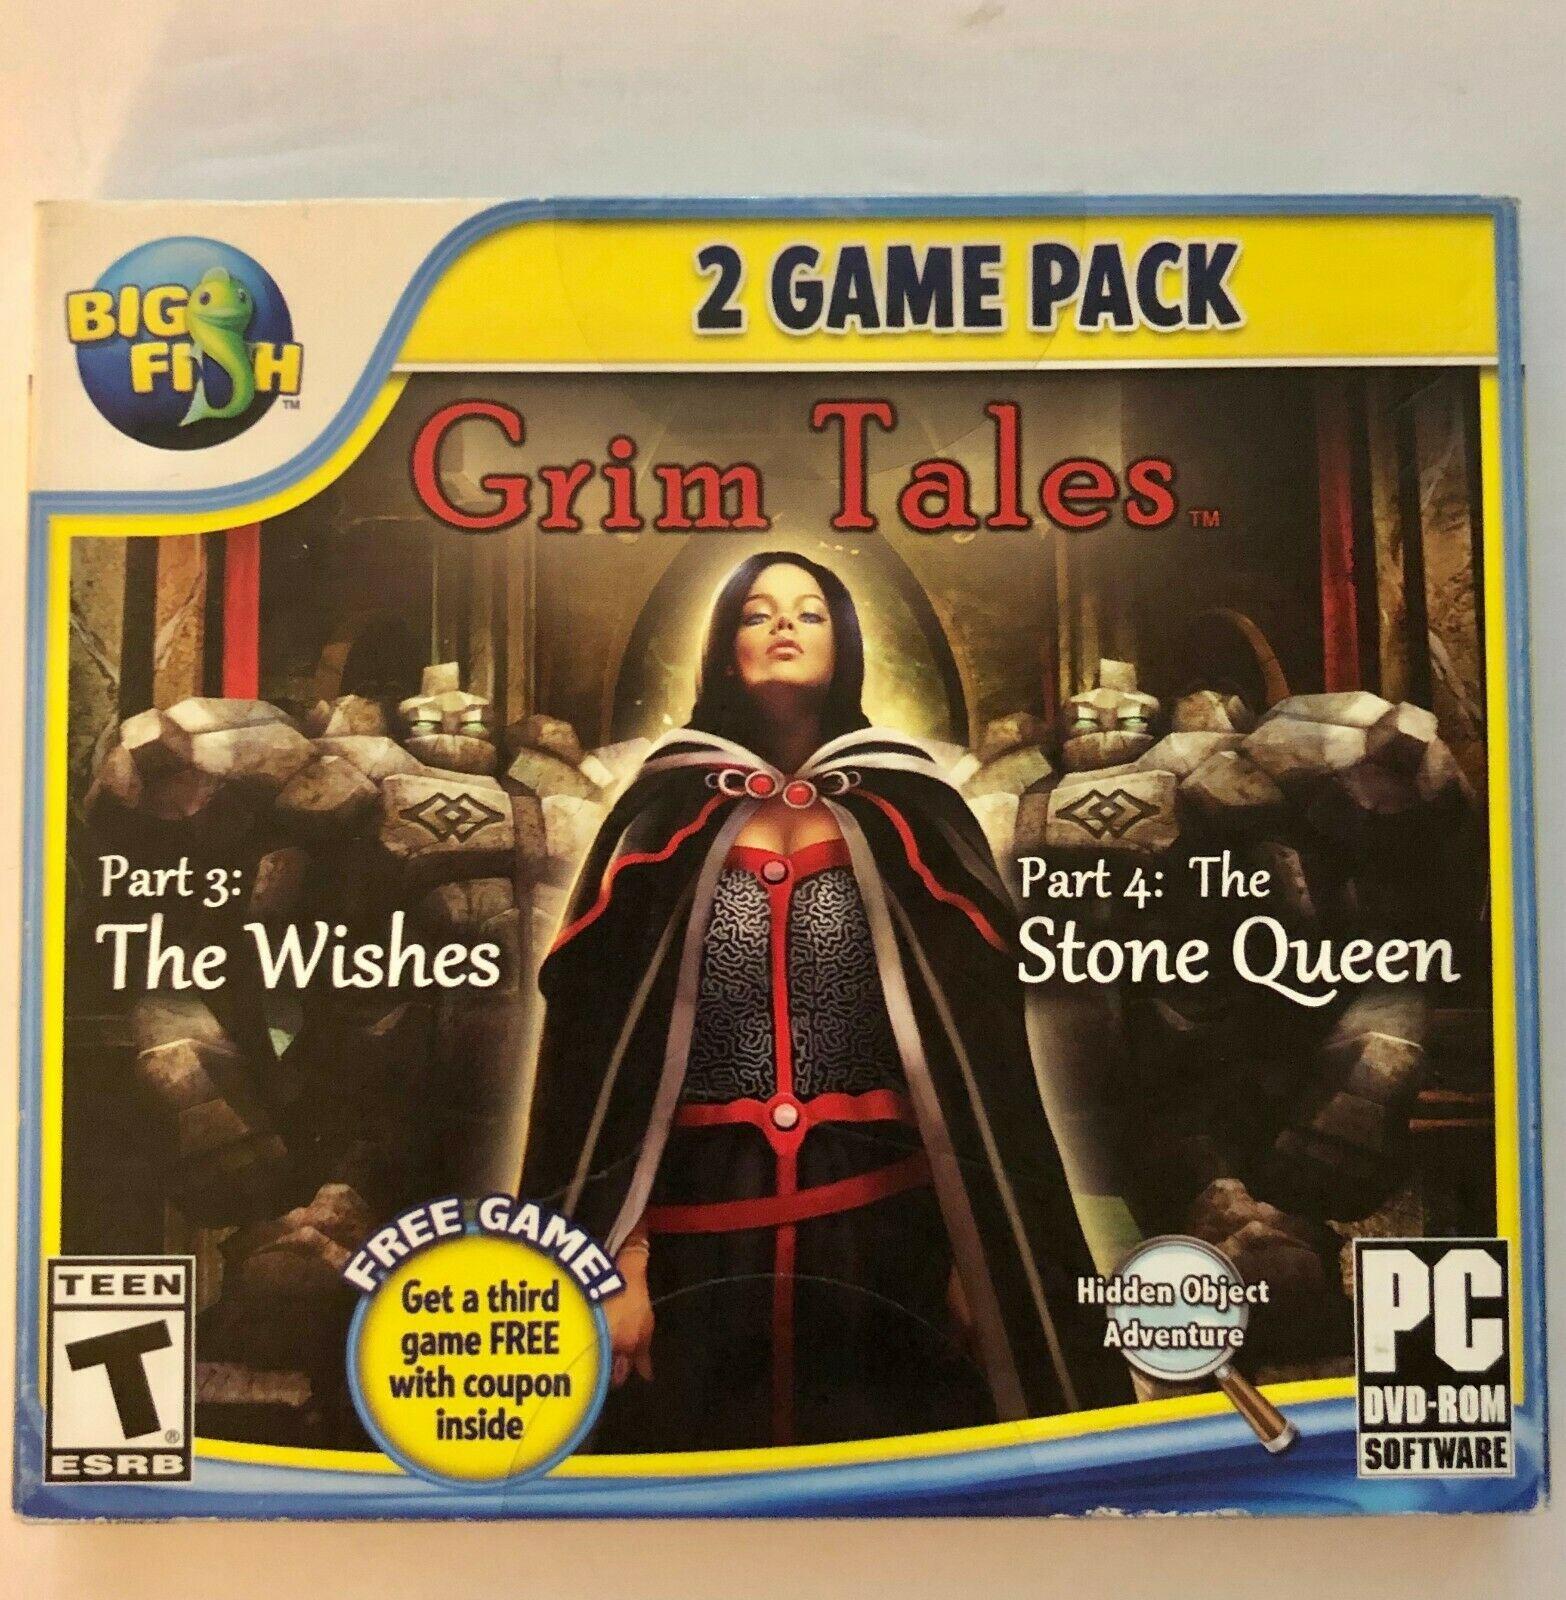 Grim Tales THE WISHES & THE STONE QUEEN & BONUS! Hidden Object PC Game DVD NEW